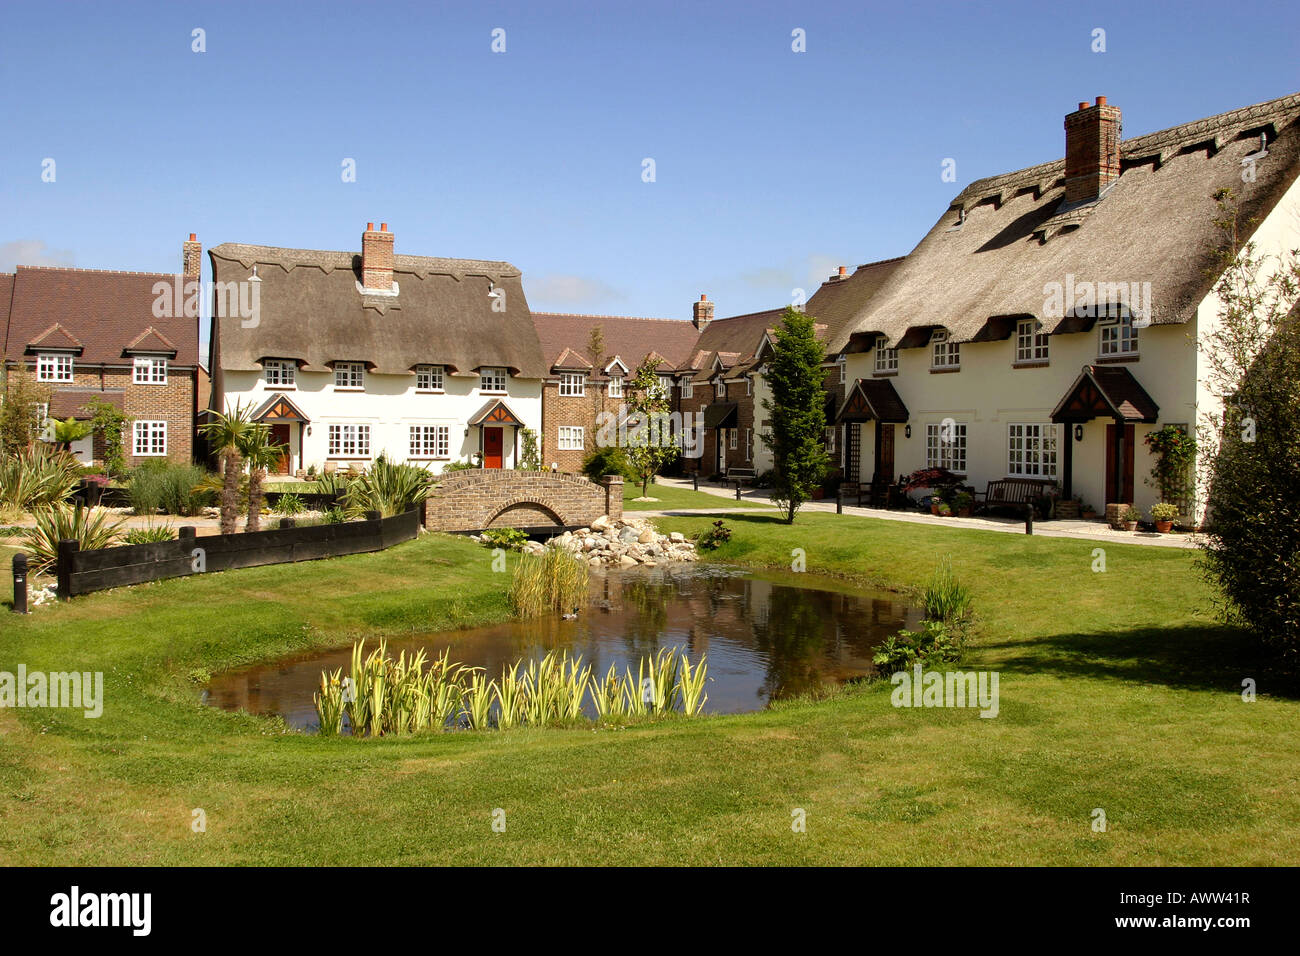 Uk West Sussex Clymping Waterford Gardens The Village